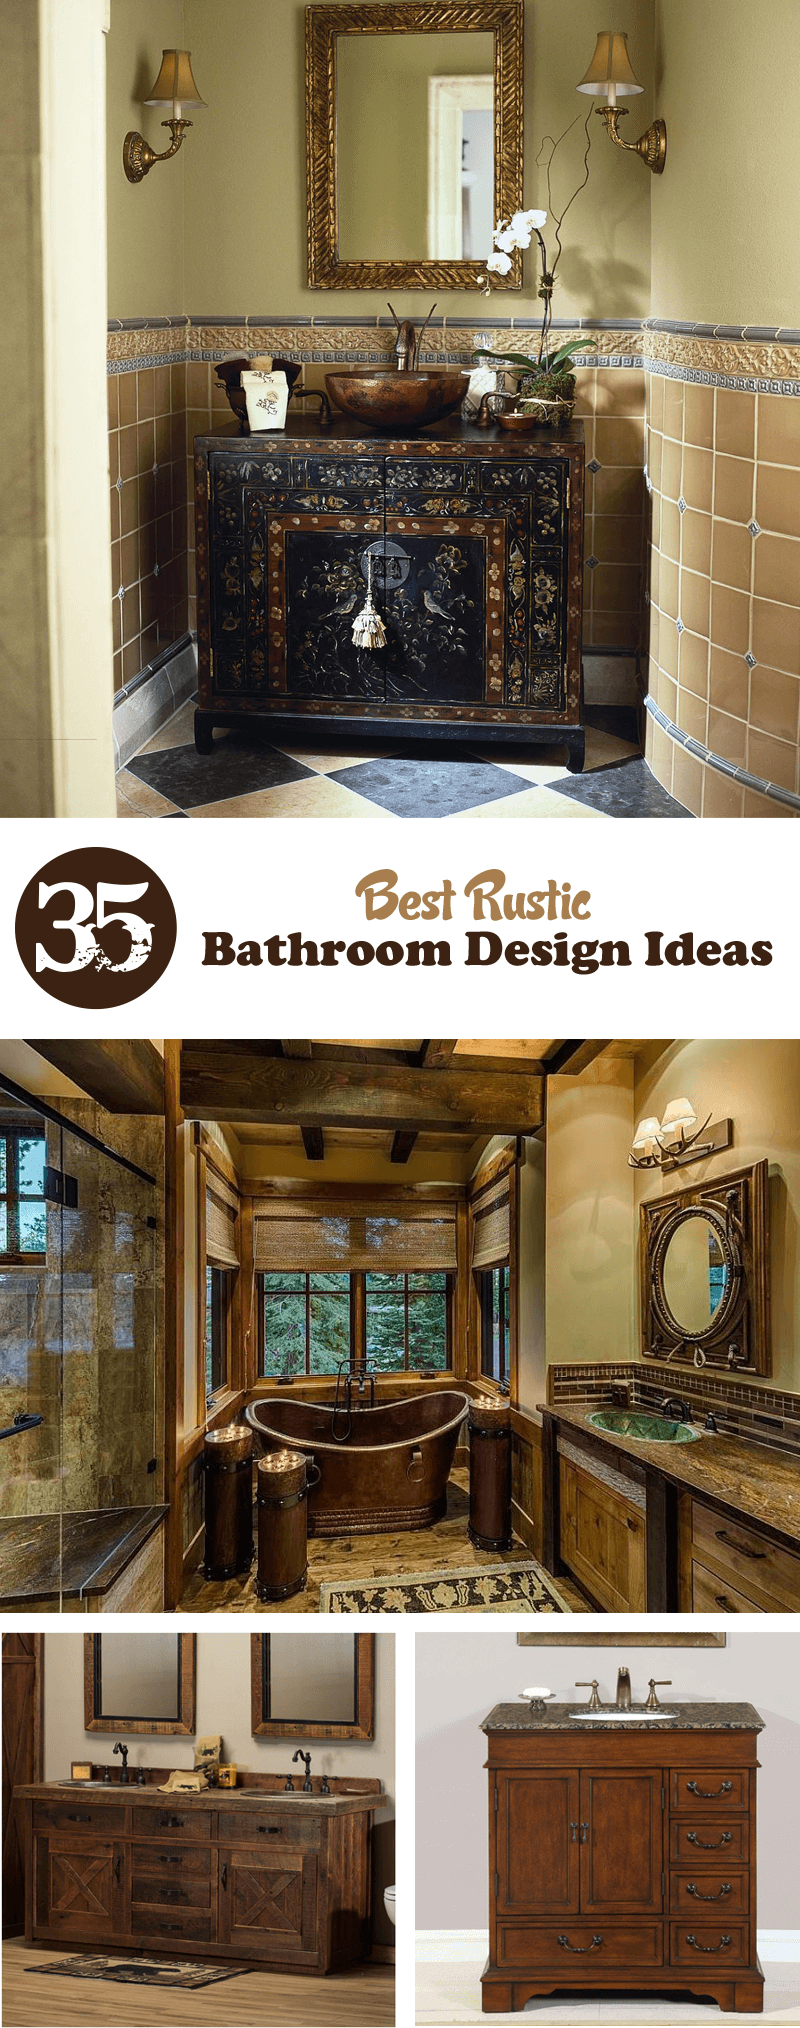 Great Ideas To Design And Decorate A Rustic Bathroom In Your Home